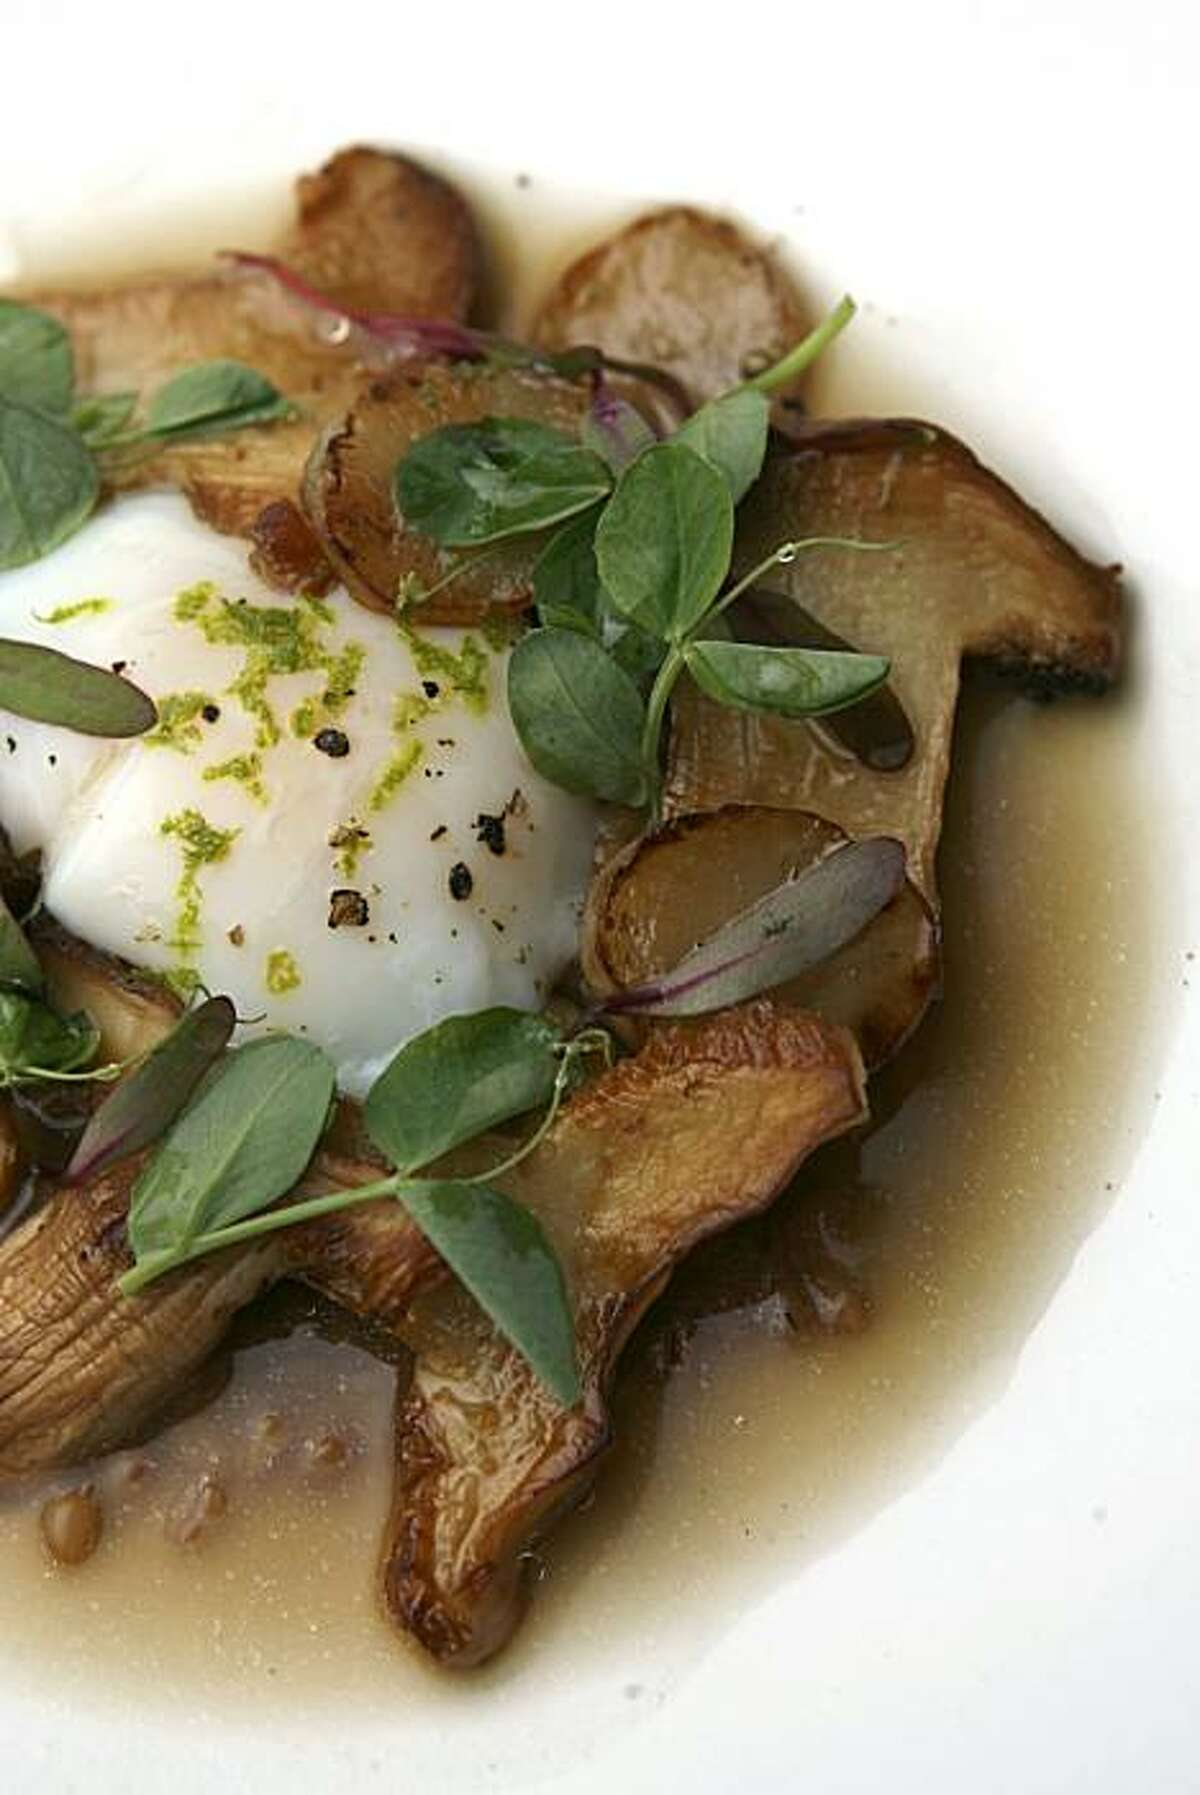 Commonwealth offers a dish of slow cooked farm egg nestled in matsutake mushrooms, Jerusalem artichoke, barley and yuzu. Commonwealth is a Progressive American restaurant in the Mission District under the direction of executive chef Jason Fox and chef de cuisine Ian Muntzert in San Francisco, Calif. on Saturday, Nov. 20, 2010.